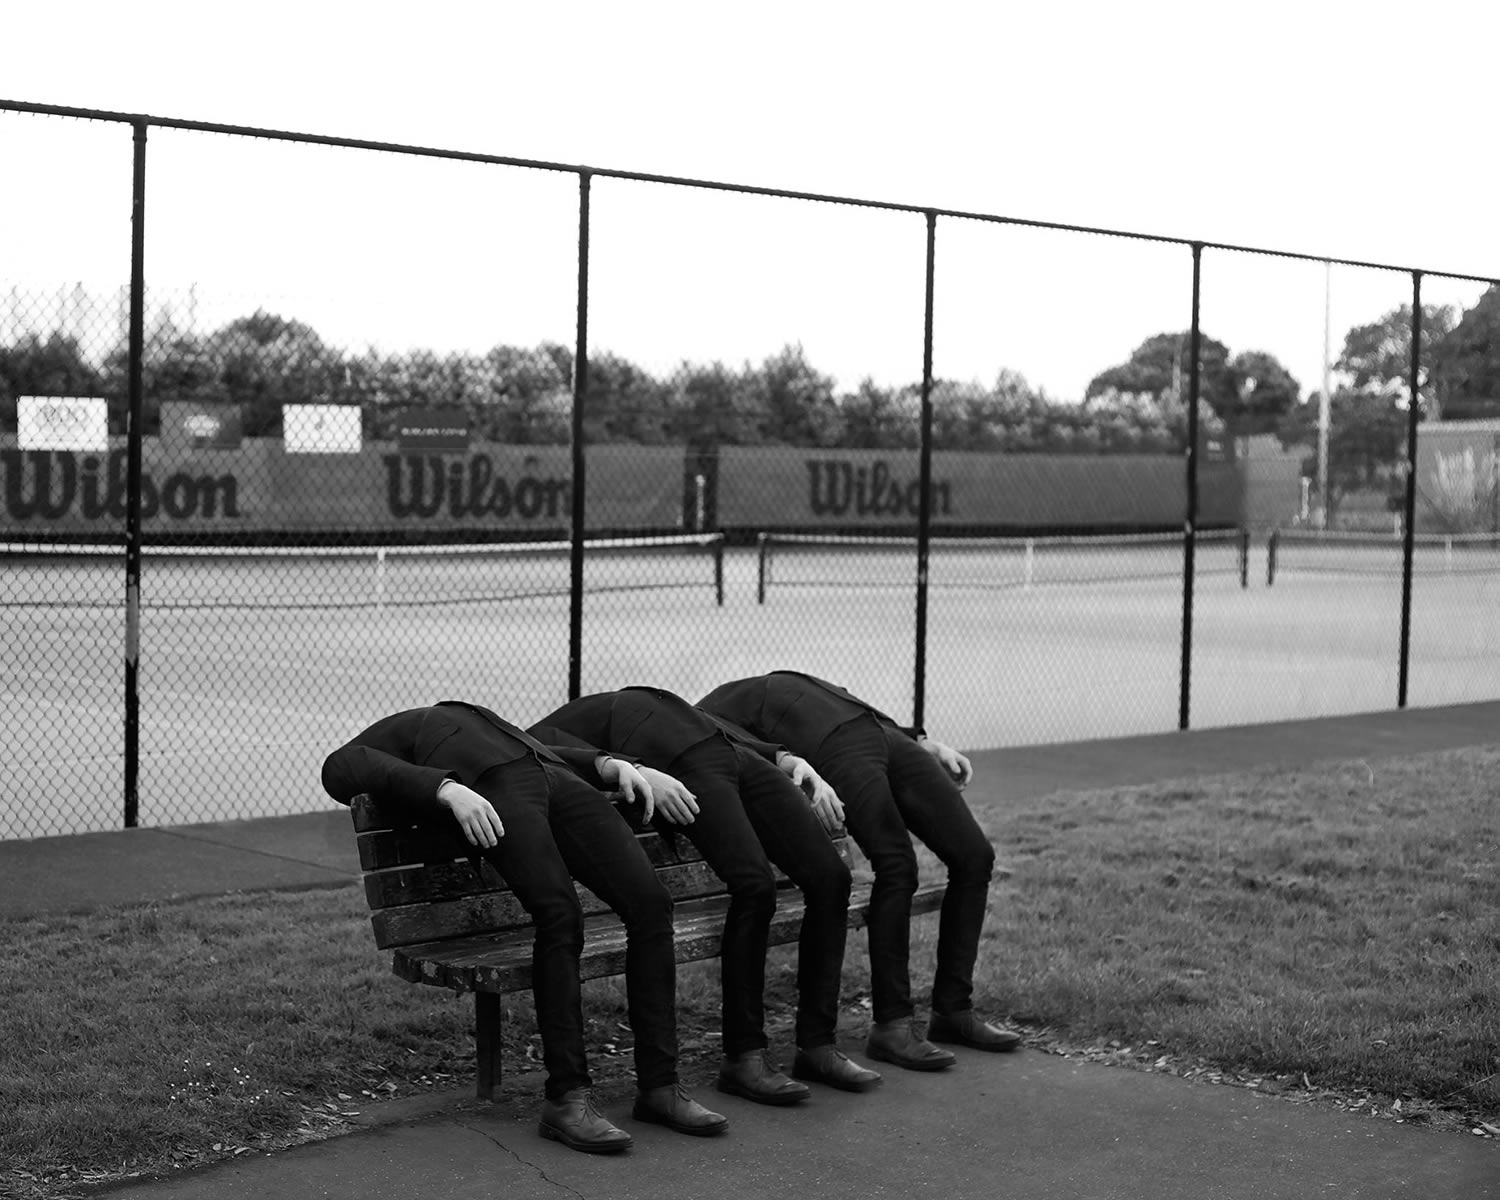 three men in black bent over bench, photography